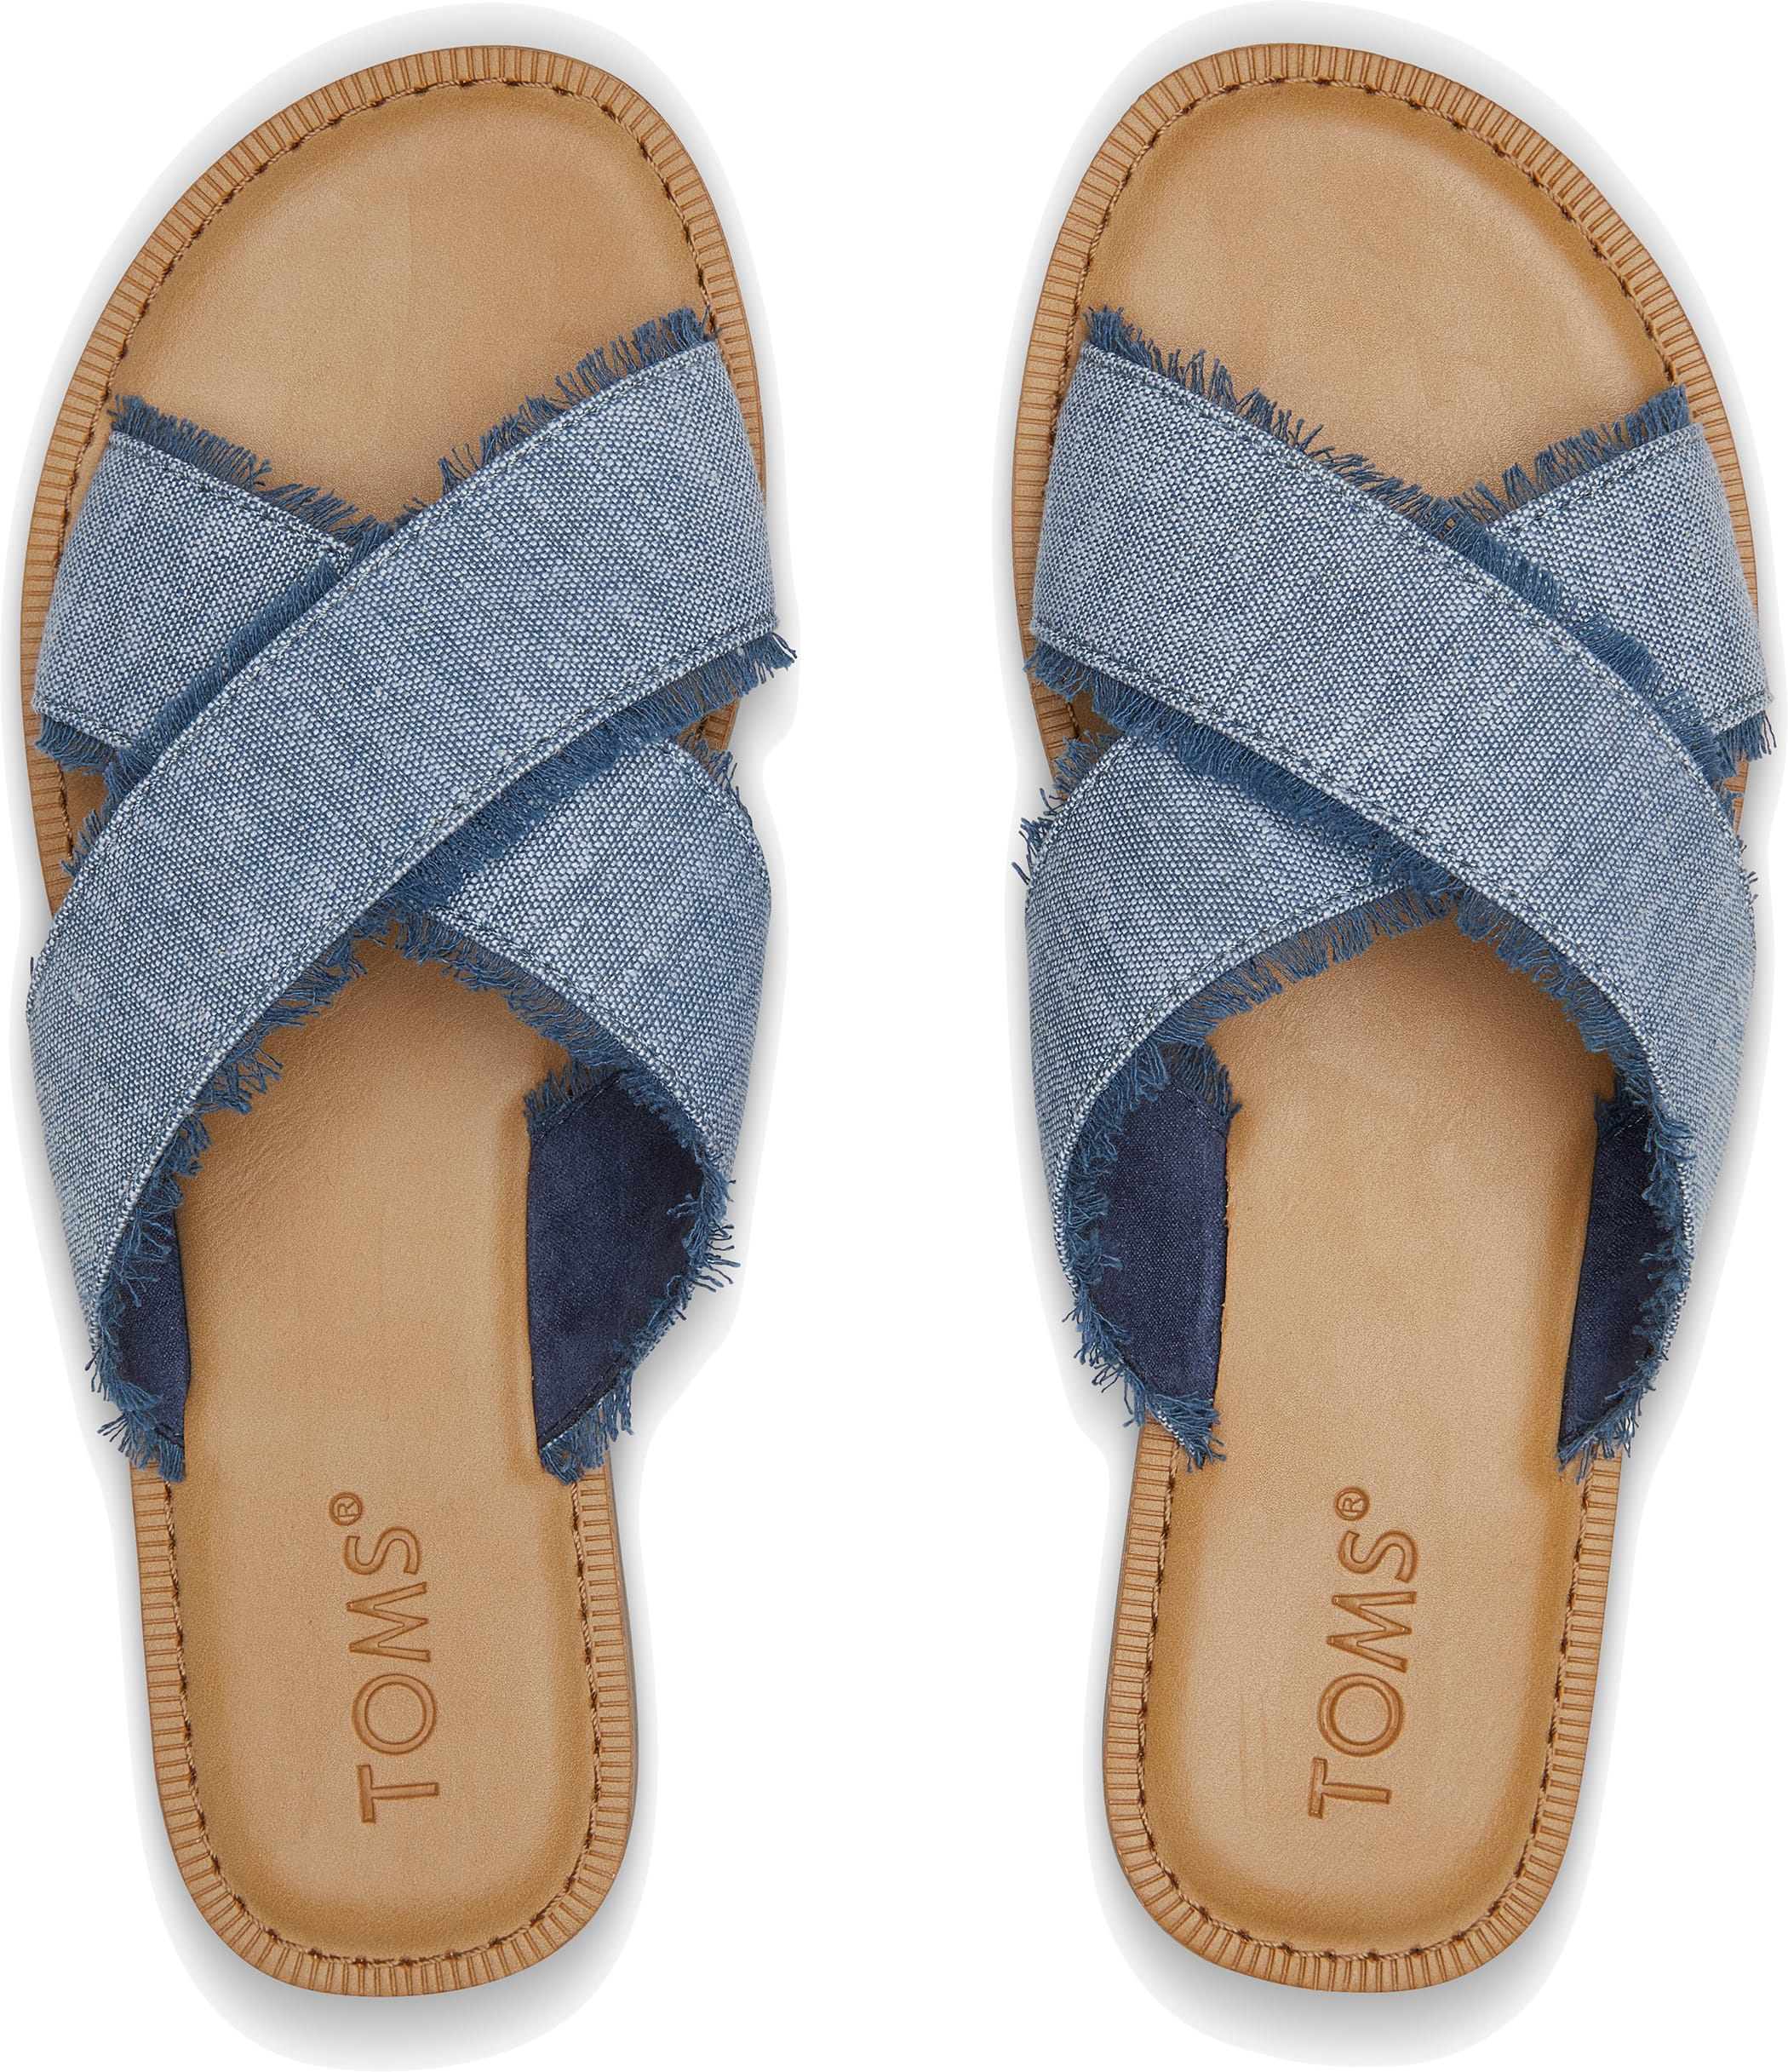 Toms Viv Sandals at the Flip Flip Shop